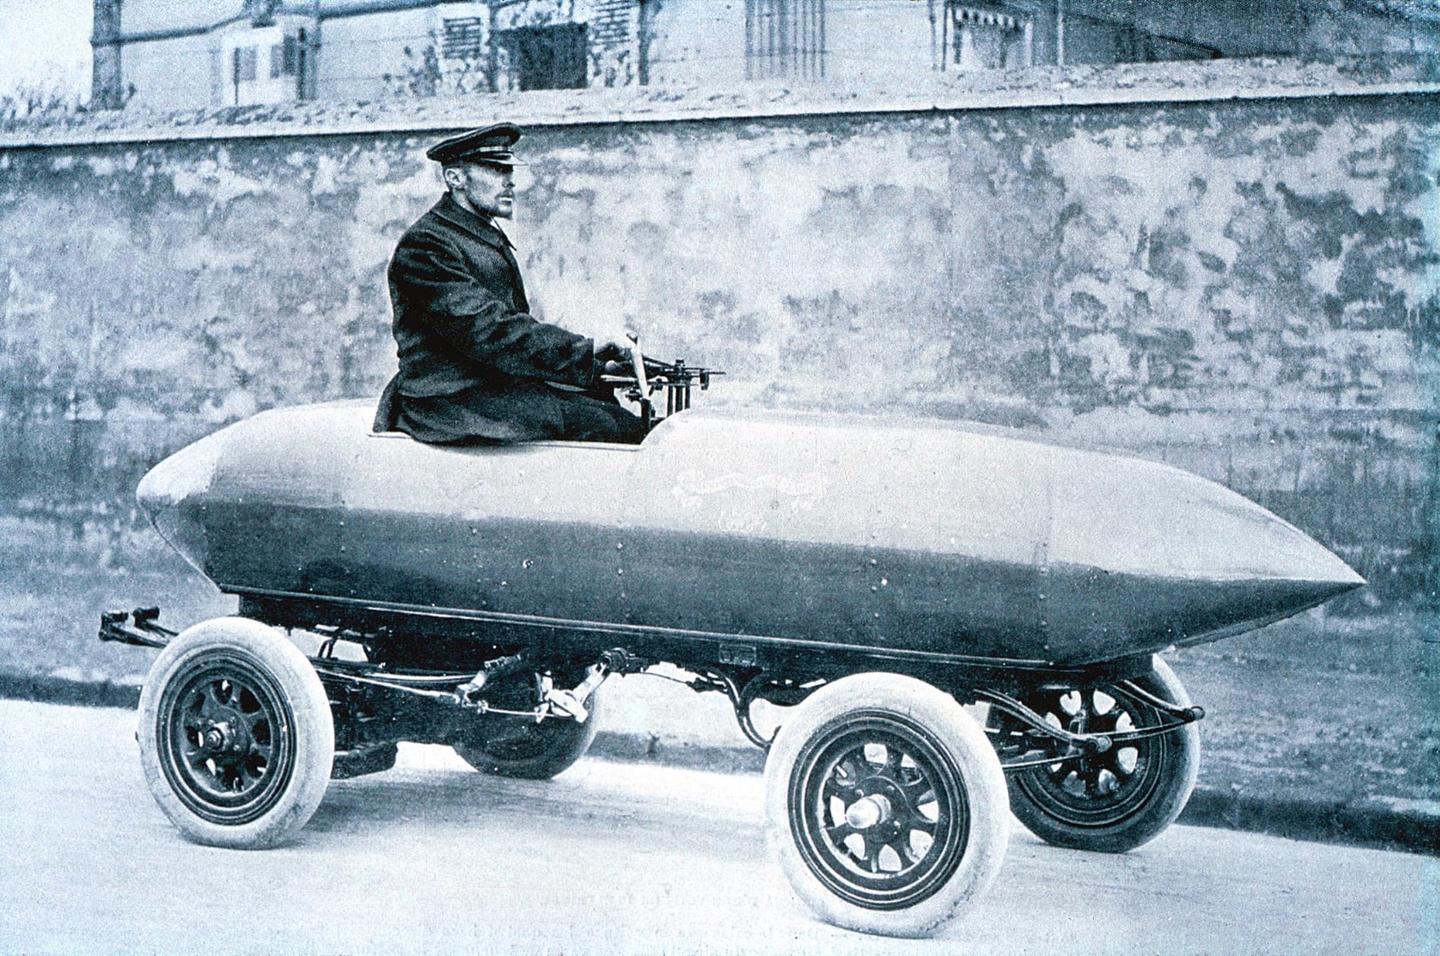 """Jenatzy created the first """"purpose built"""" car for a land speed record which he named the """"Jamais Contente."""" Thetorpedo-shaped electric vehicle made extensive use of """"partinium"""", a strong, lightweight and expensive alloy made of aluminum, copper, zinc, silicon and iron which had not been previously used in a car. The car ran65.79 mph (105.26 km/h) for the final chapter in the duel."""